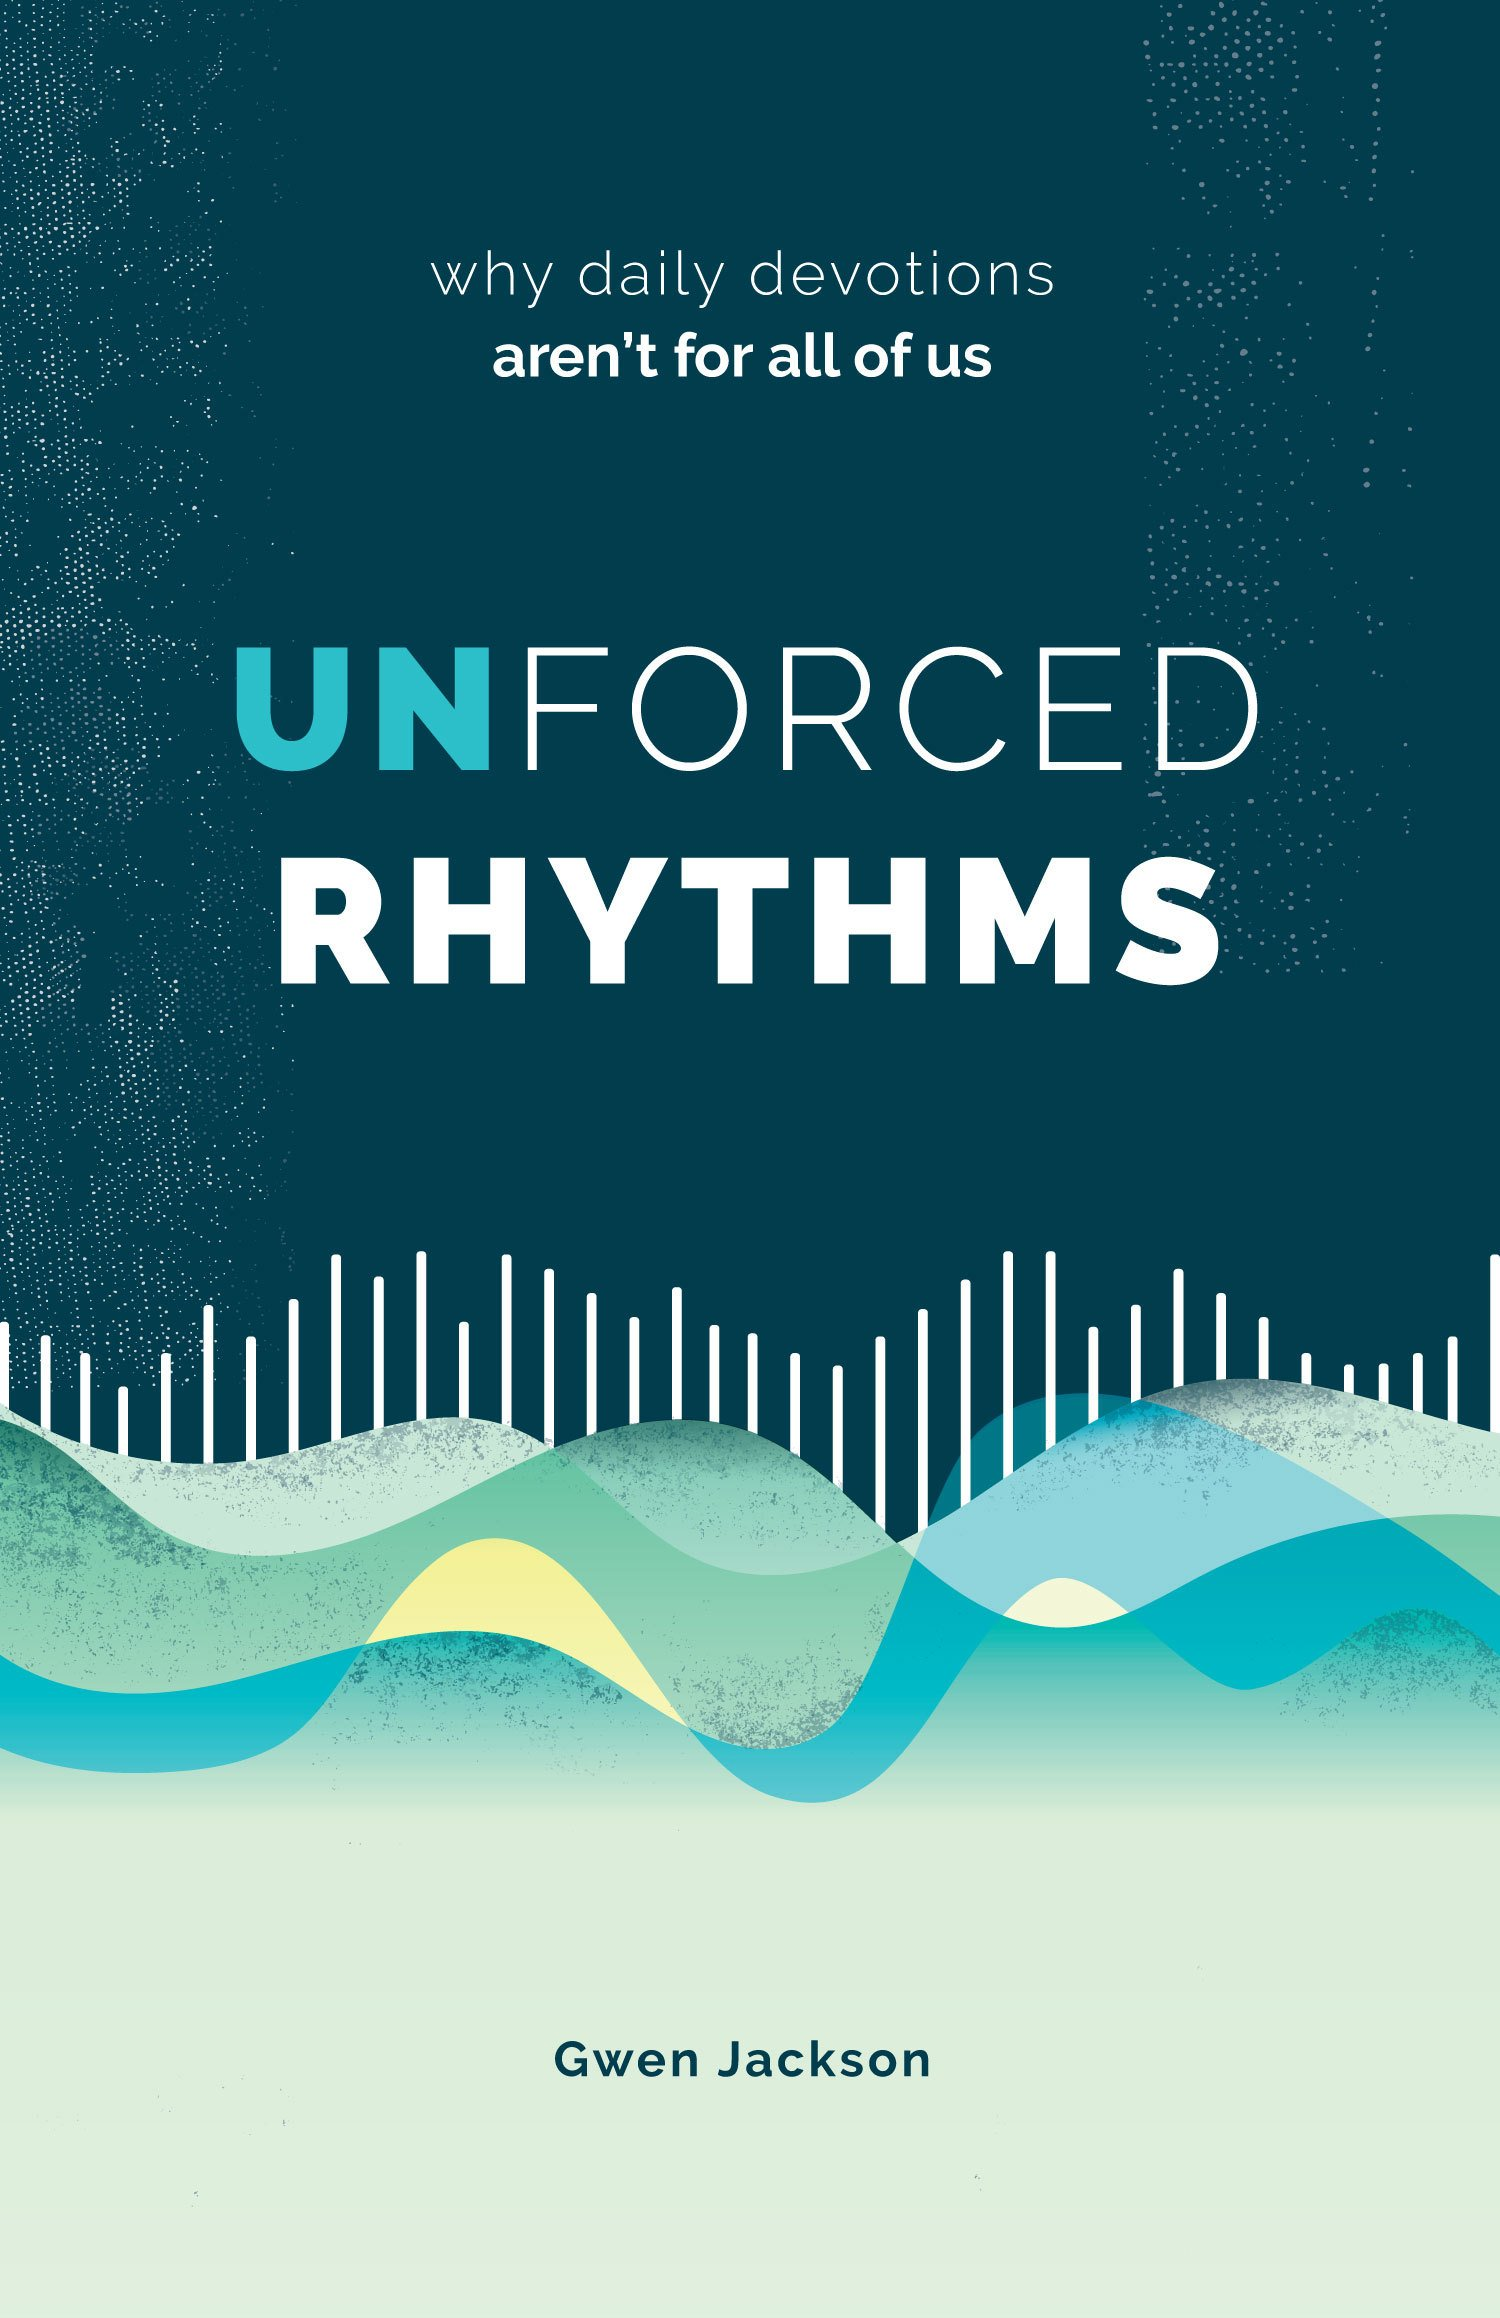 Unforced Rhythms: Why Daily Devotions Aren't for All of Us: Gwen Jackson:  9781632572141: Amazon.com: Books